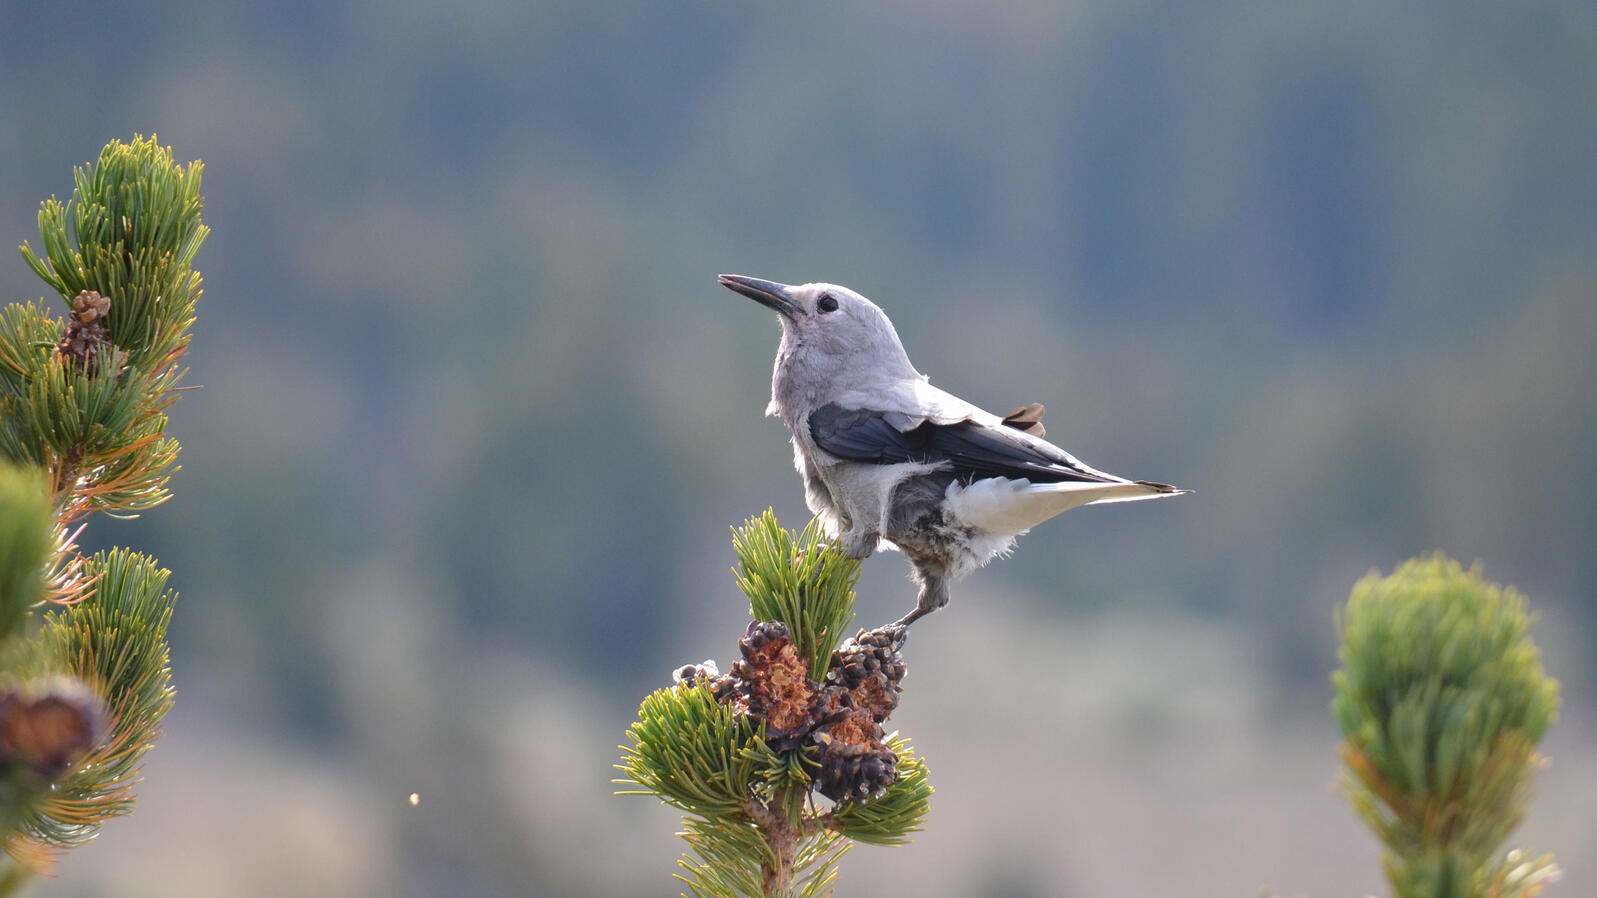 Why Bird Brain Shouldnt Be Considered >> Better Know A Bird The Clark S Nutcracker And Its Obsessive Seed